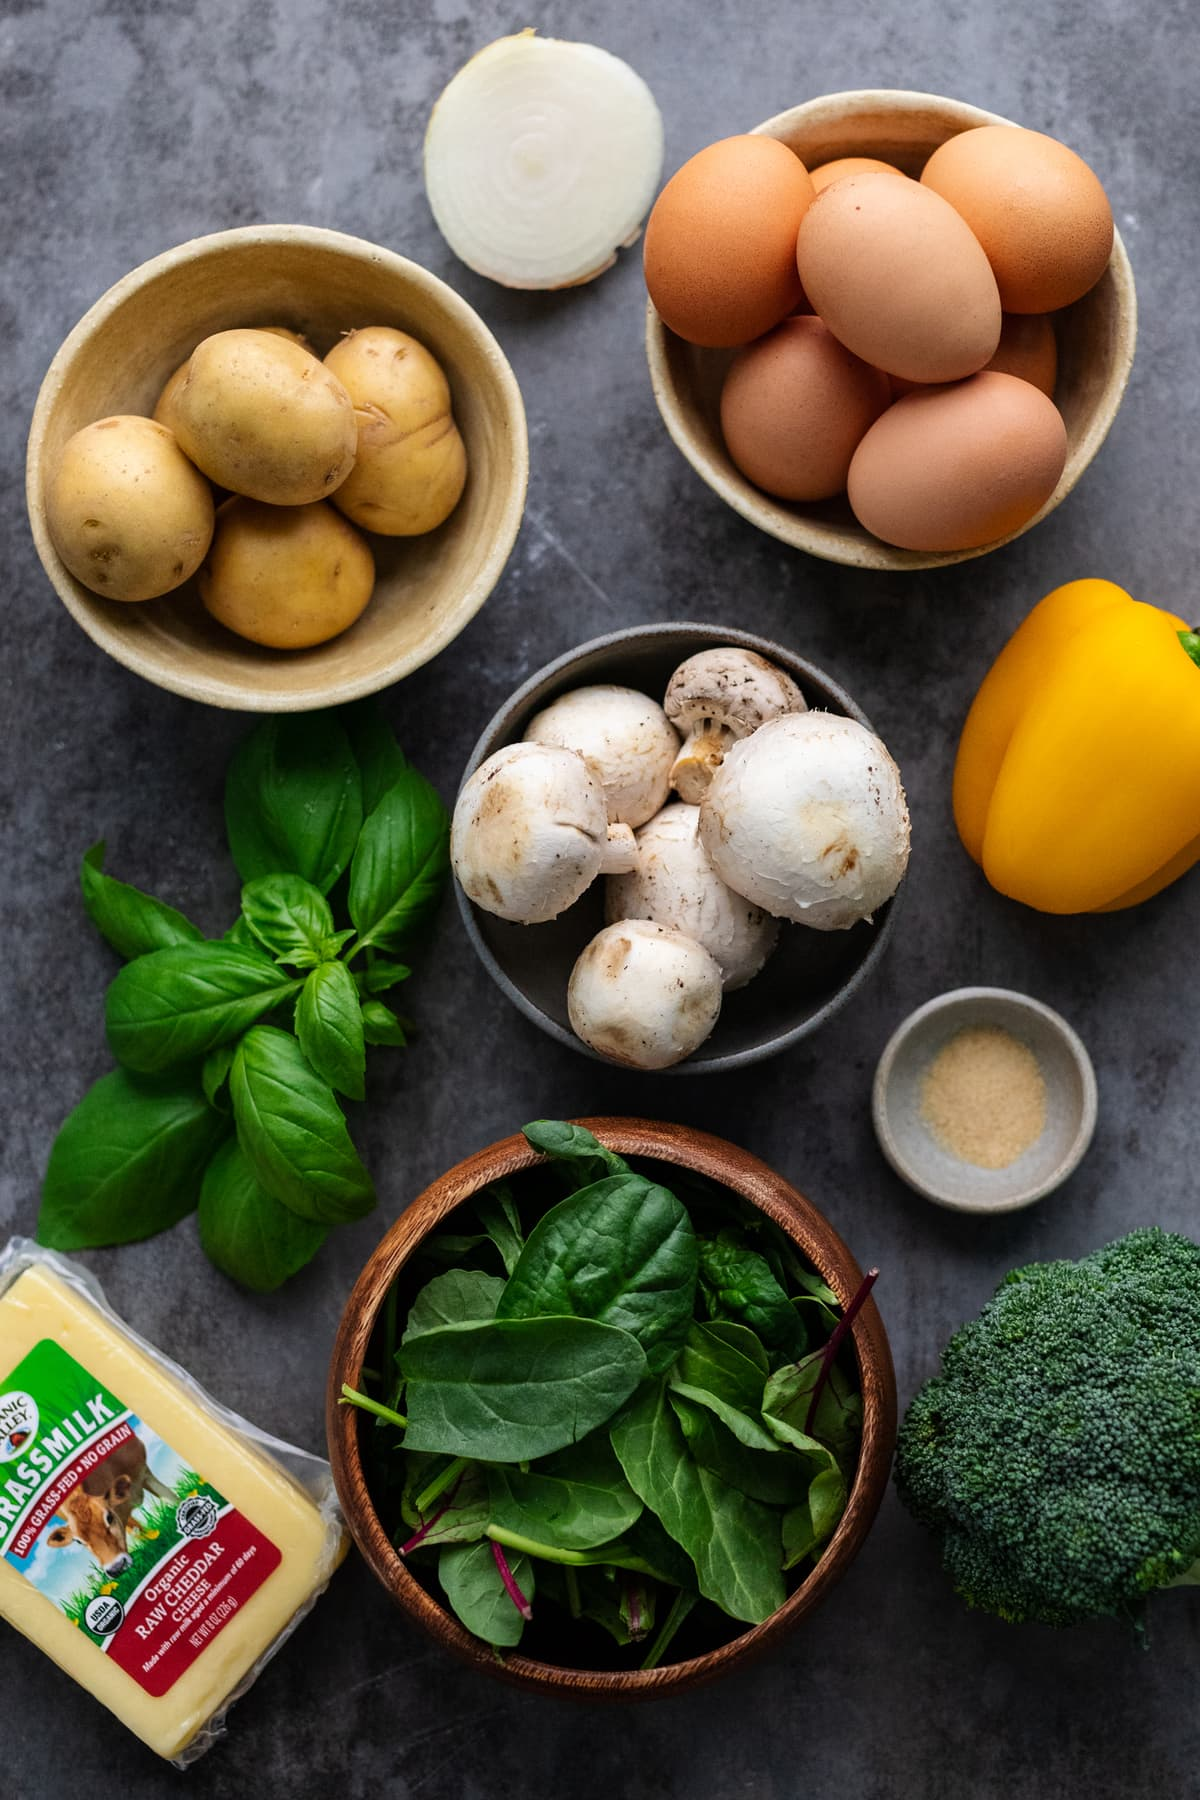 Ingredients for a breakfast egg casserole arranged on a gray background.